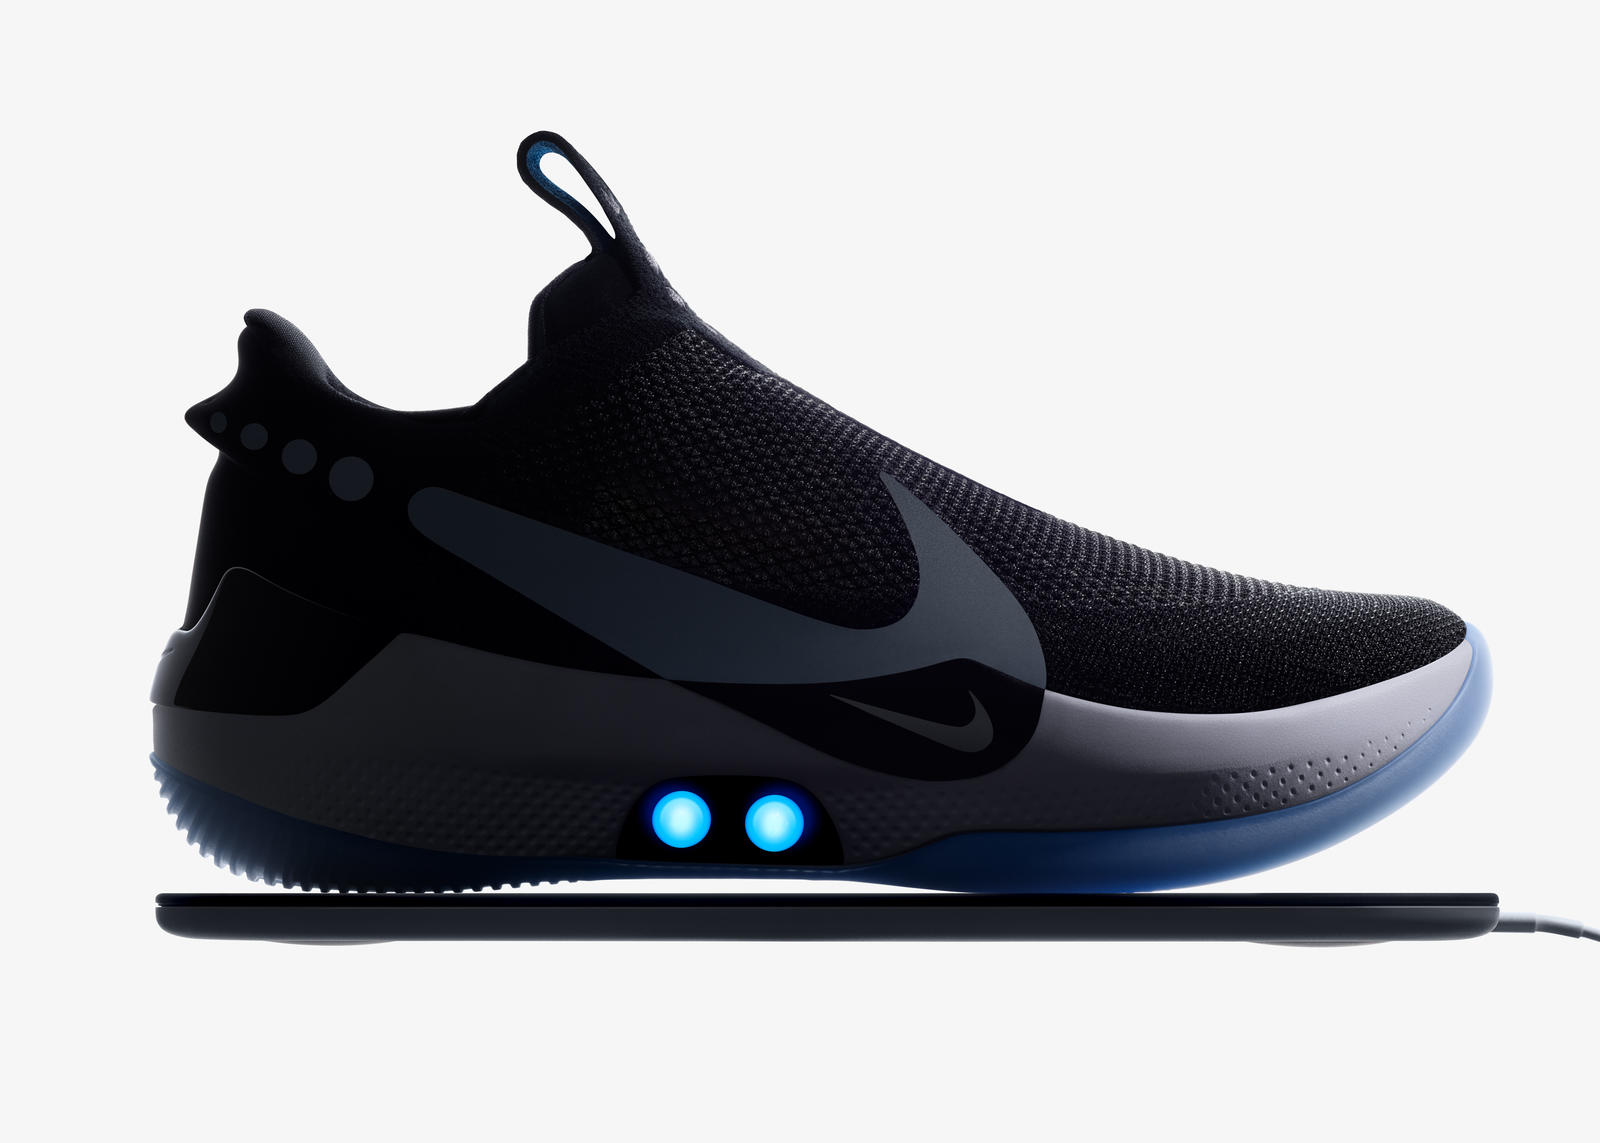 f1bc7591 Introducing the Nike Adapt BB - Nike News